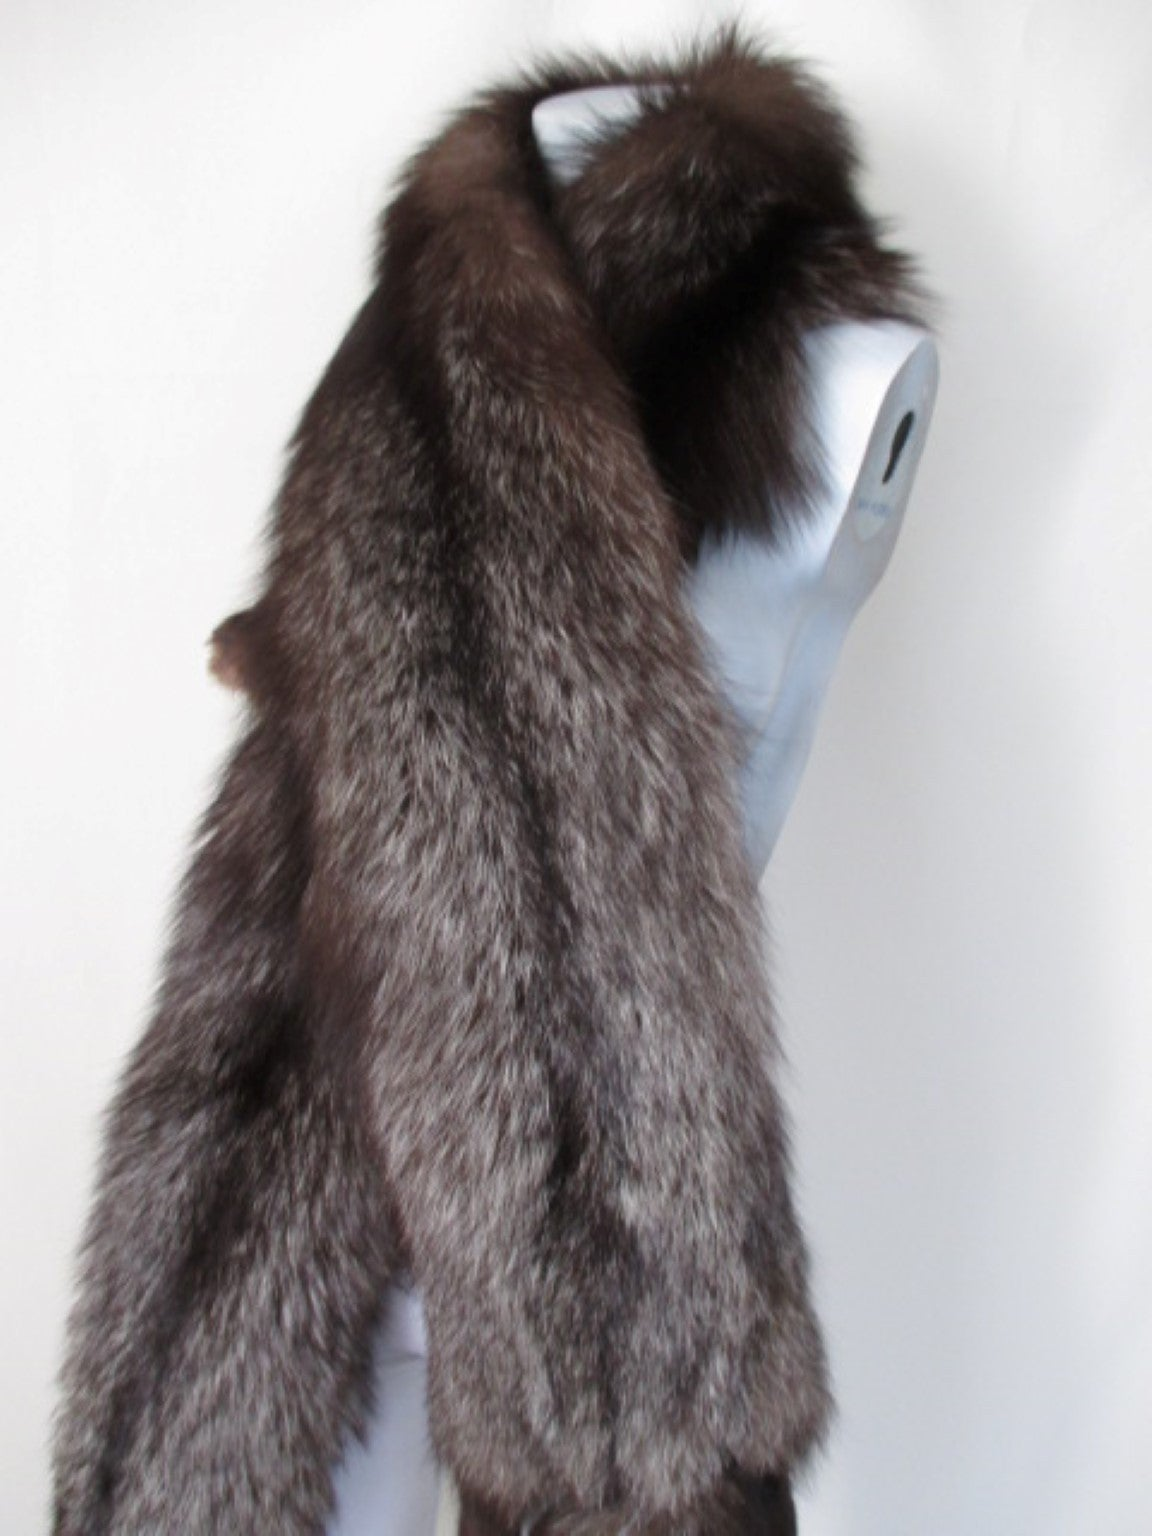 This luxurious vintage silver fox white tip tail long stole shawl wrap dates from the 20 century. It is made of fluffy plush soft supple silver gray blackish brown fox fur pelts with white tip tails. 